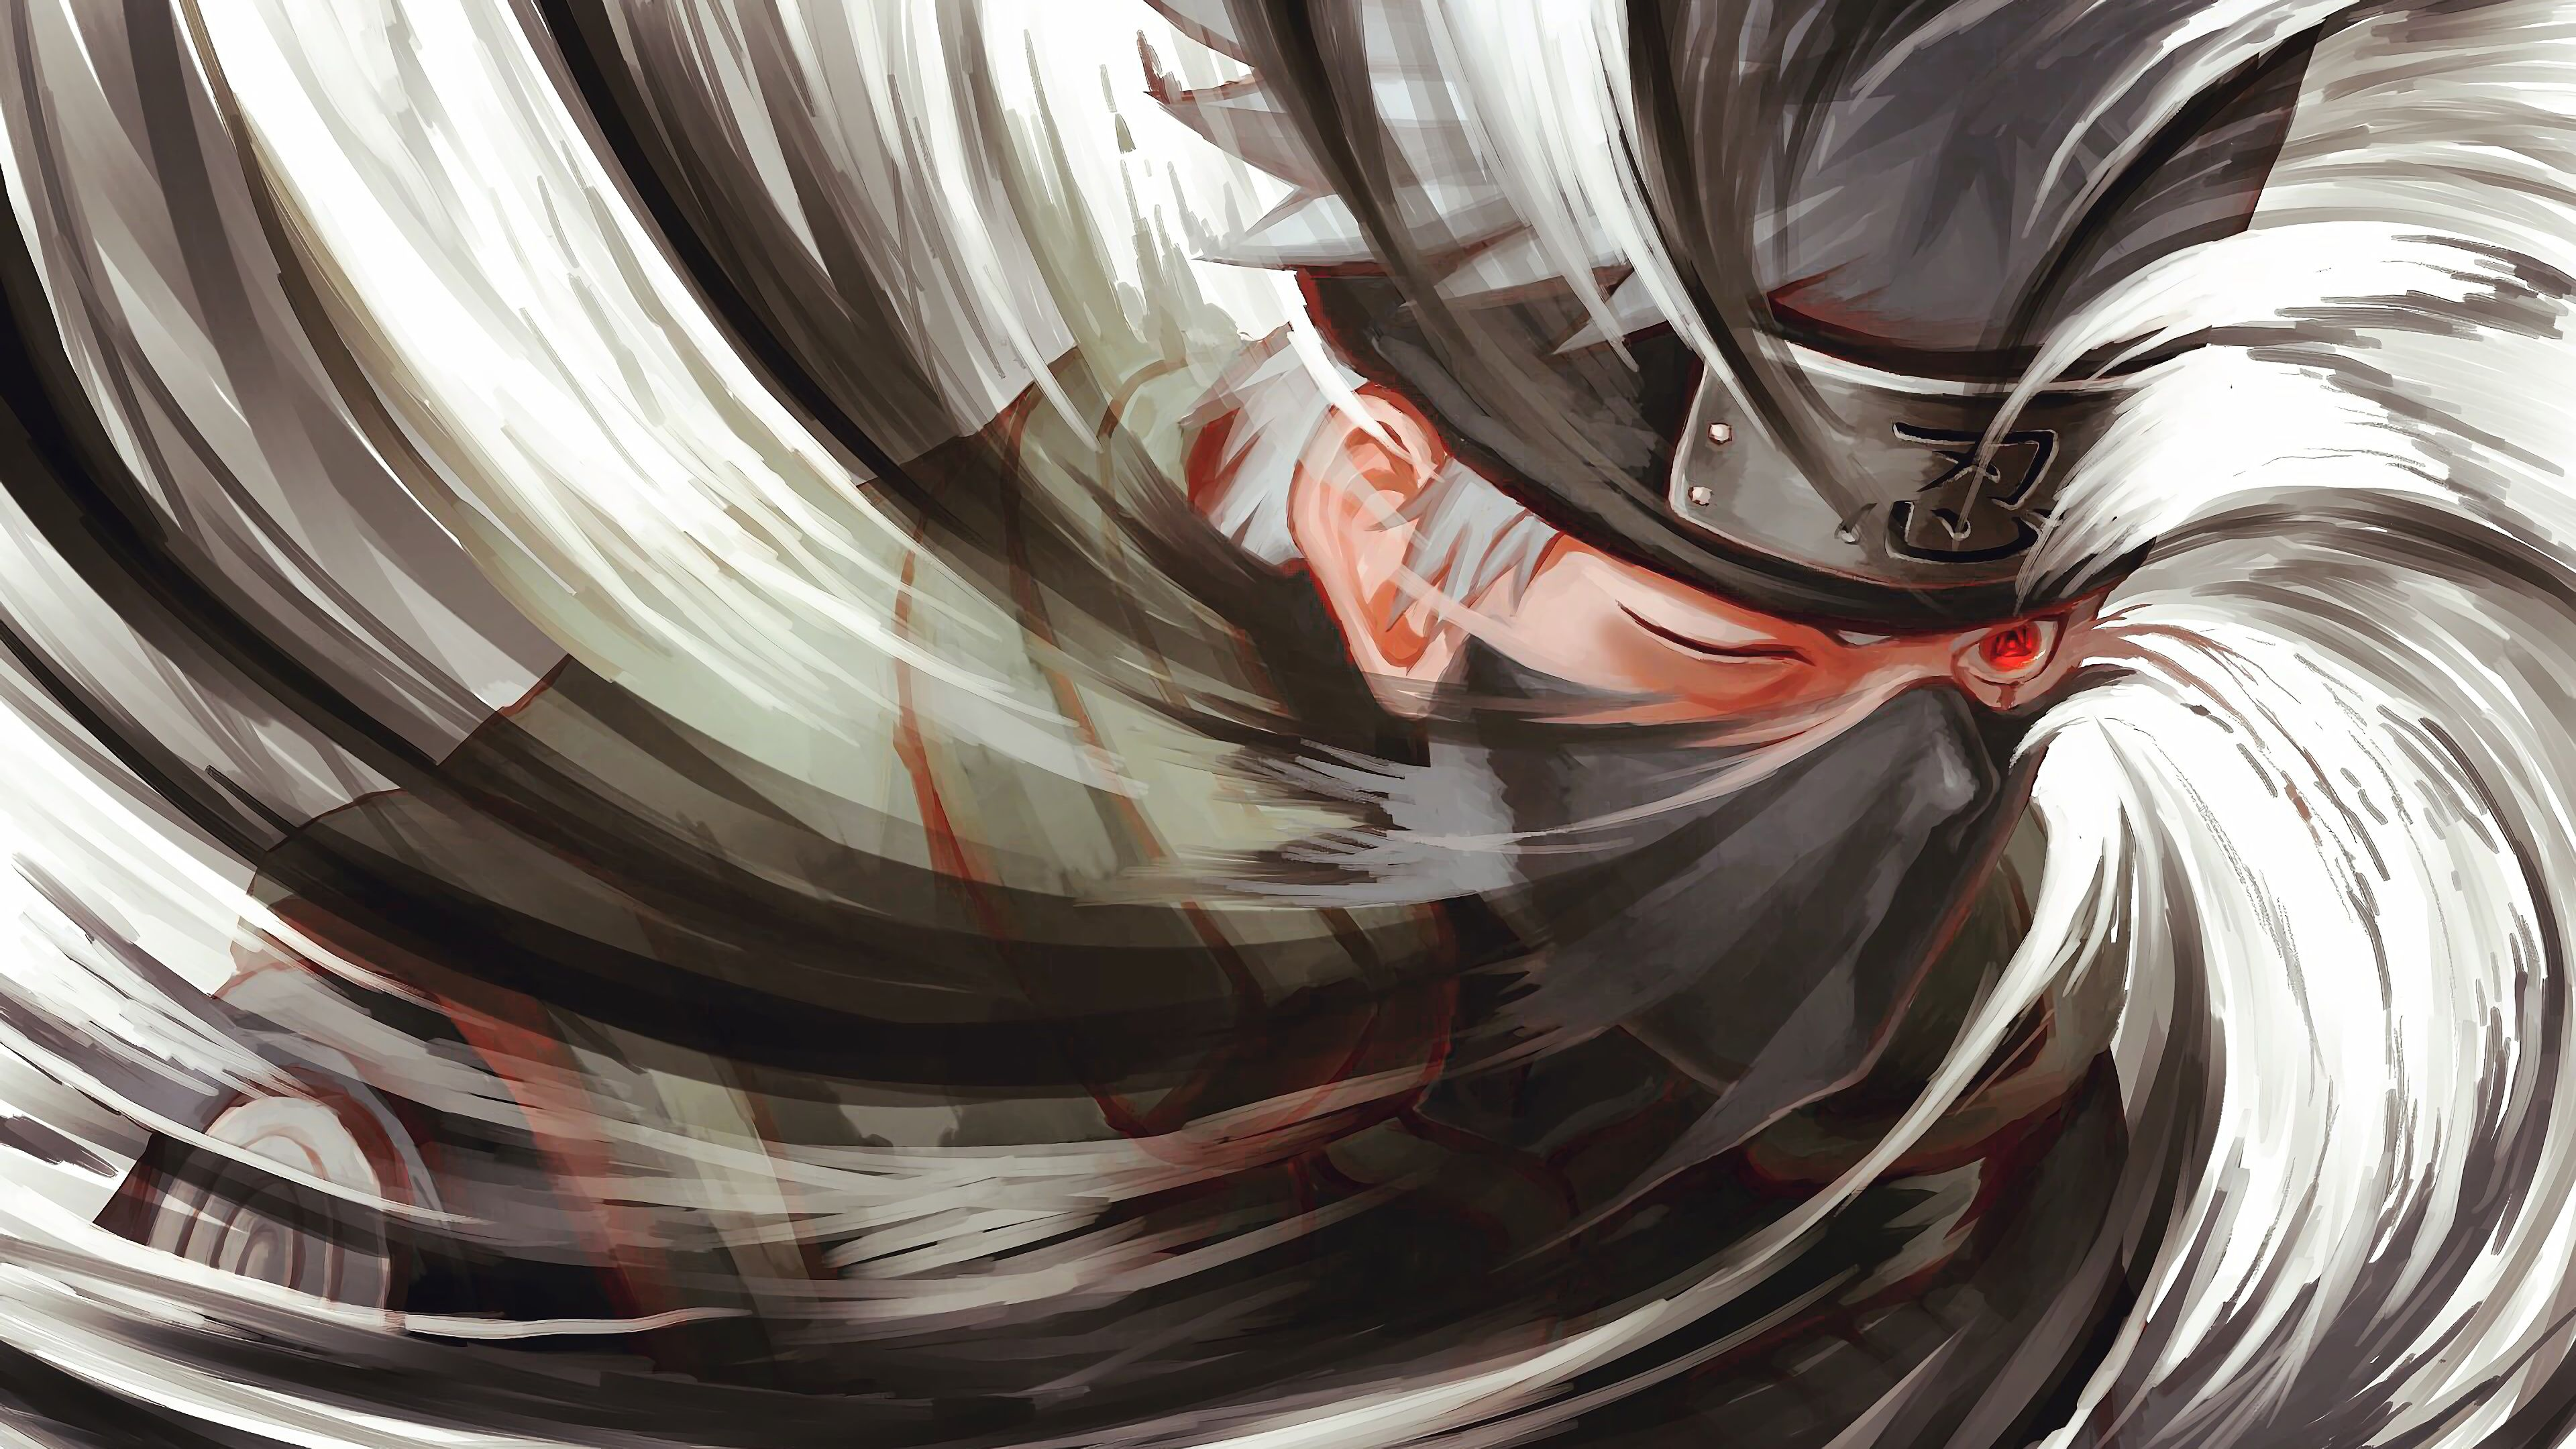 Kamui Obito Wallpapers Top Free Kamui Obito Backgrounds Wallpaperaccess